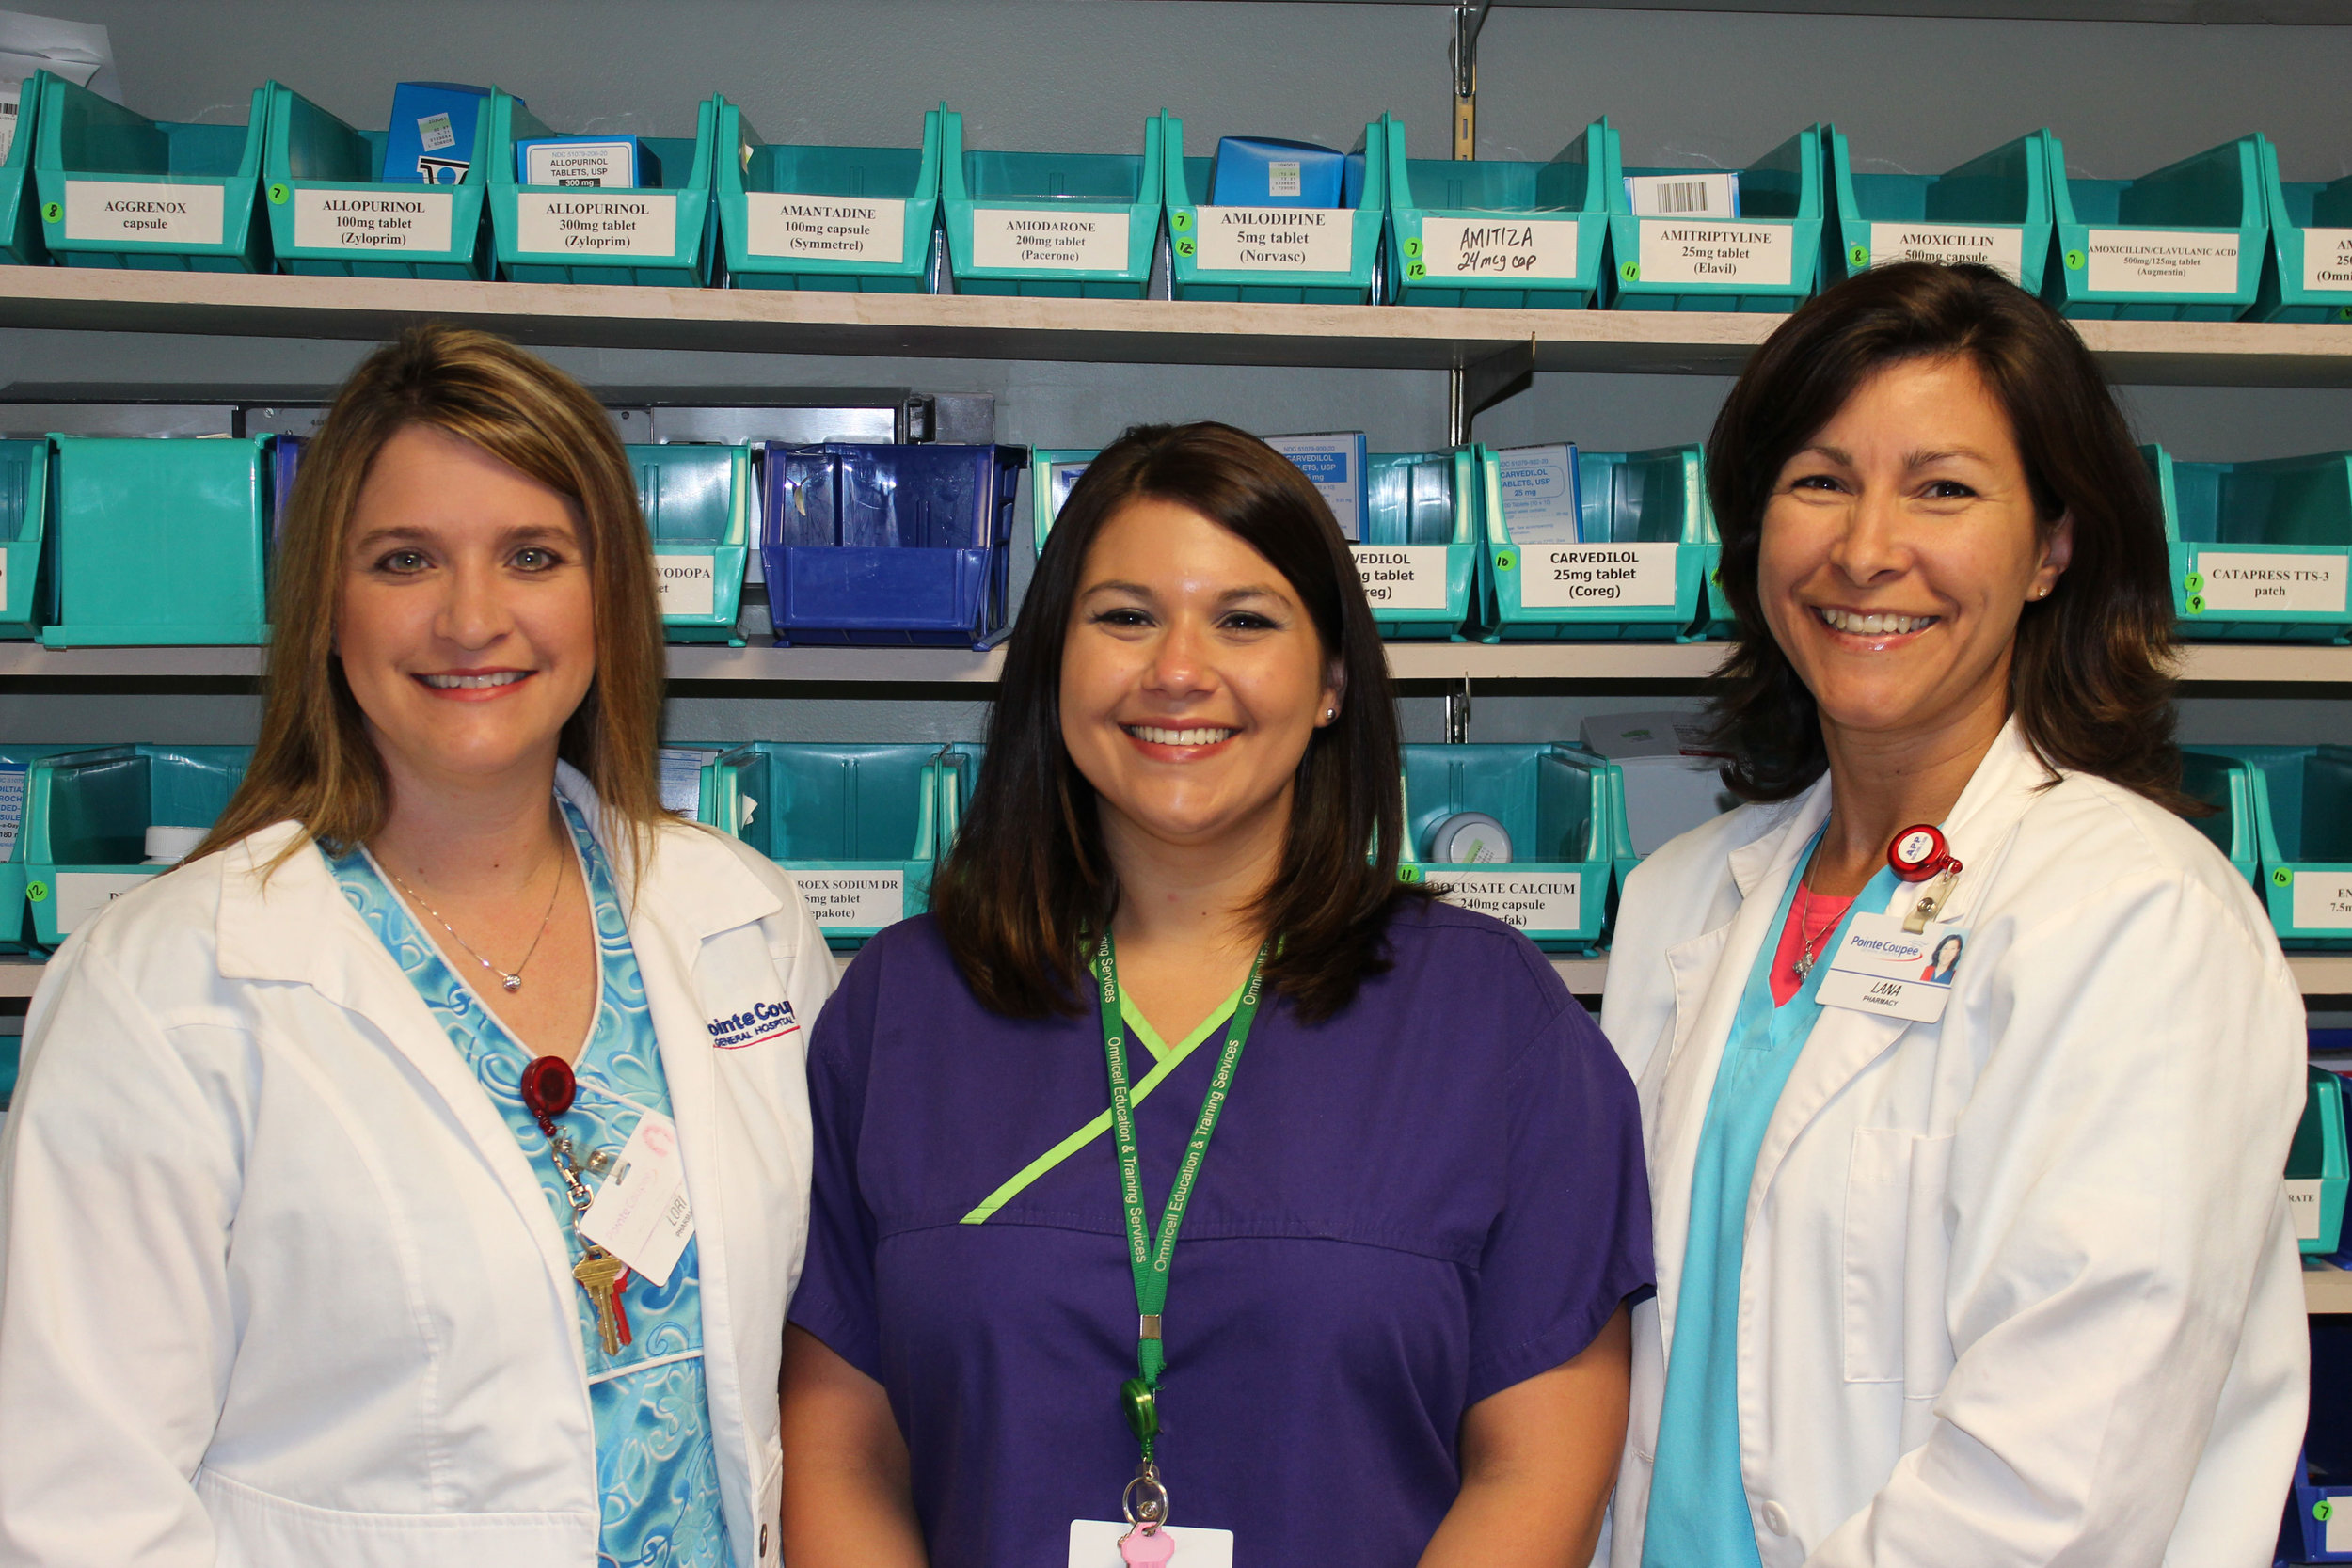 Pharmacy staff pictured left to right: Lori LaCombe, R. Ph., Brittany Fabre, CPhT, and Lana Prejean, R. Ph.